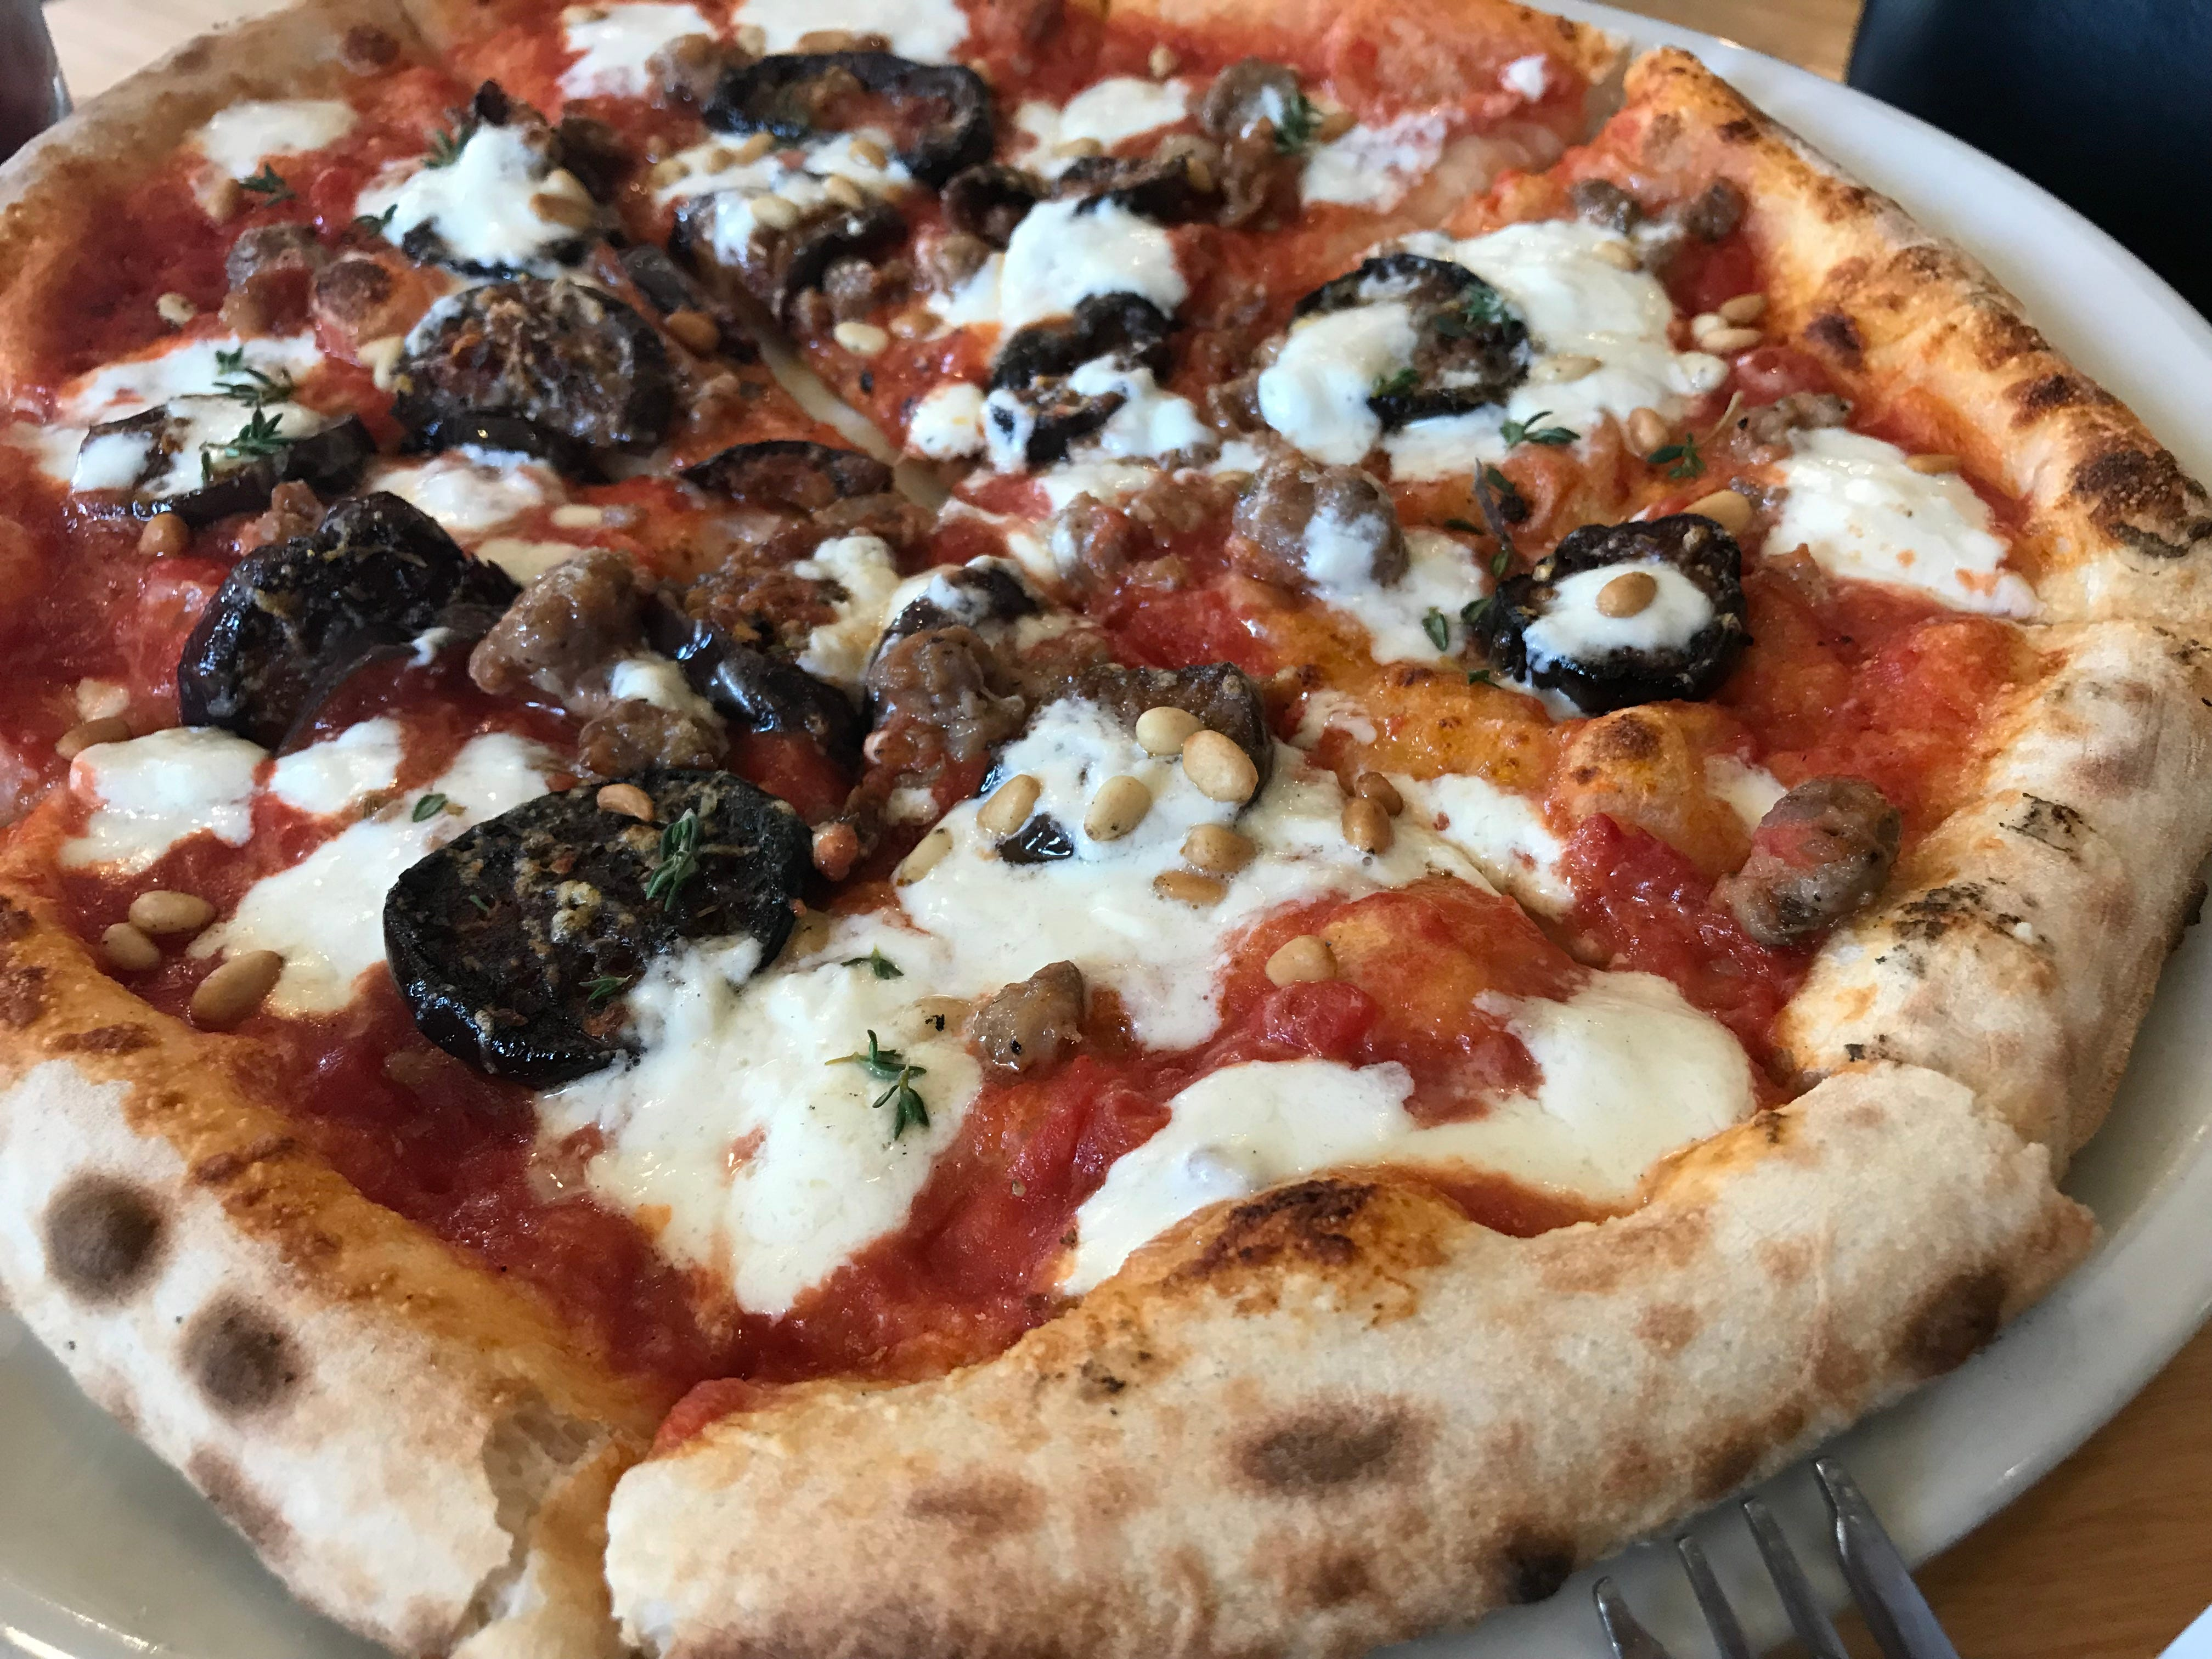 Eggplant Magic was a seasonal Neapolitan-style pizza in summer at Anodyne Coffee Bay View Cafe, 2920 S. Kinnickinnic Ave. Besides eggplant marinated to taste like caponata, it was topped with warmed burrata cheese, Italian sausage and pine nuts.